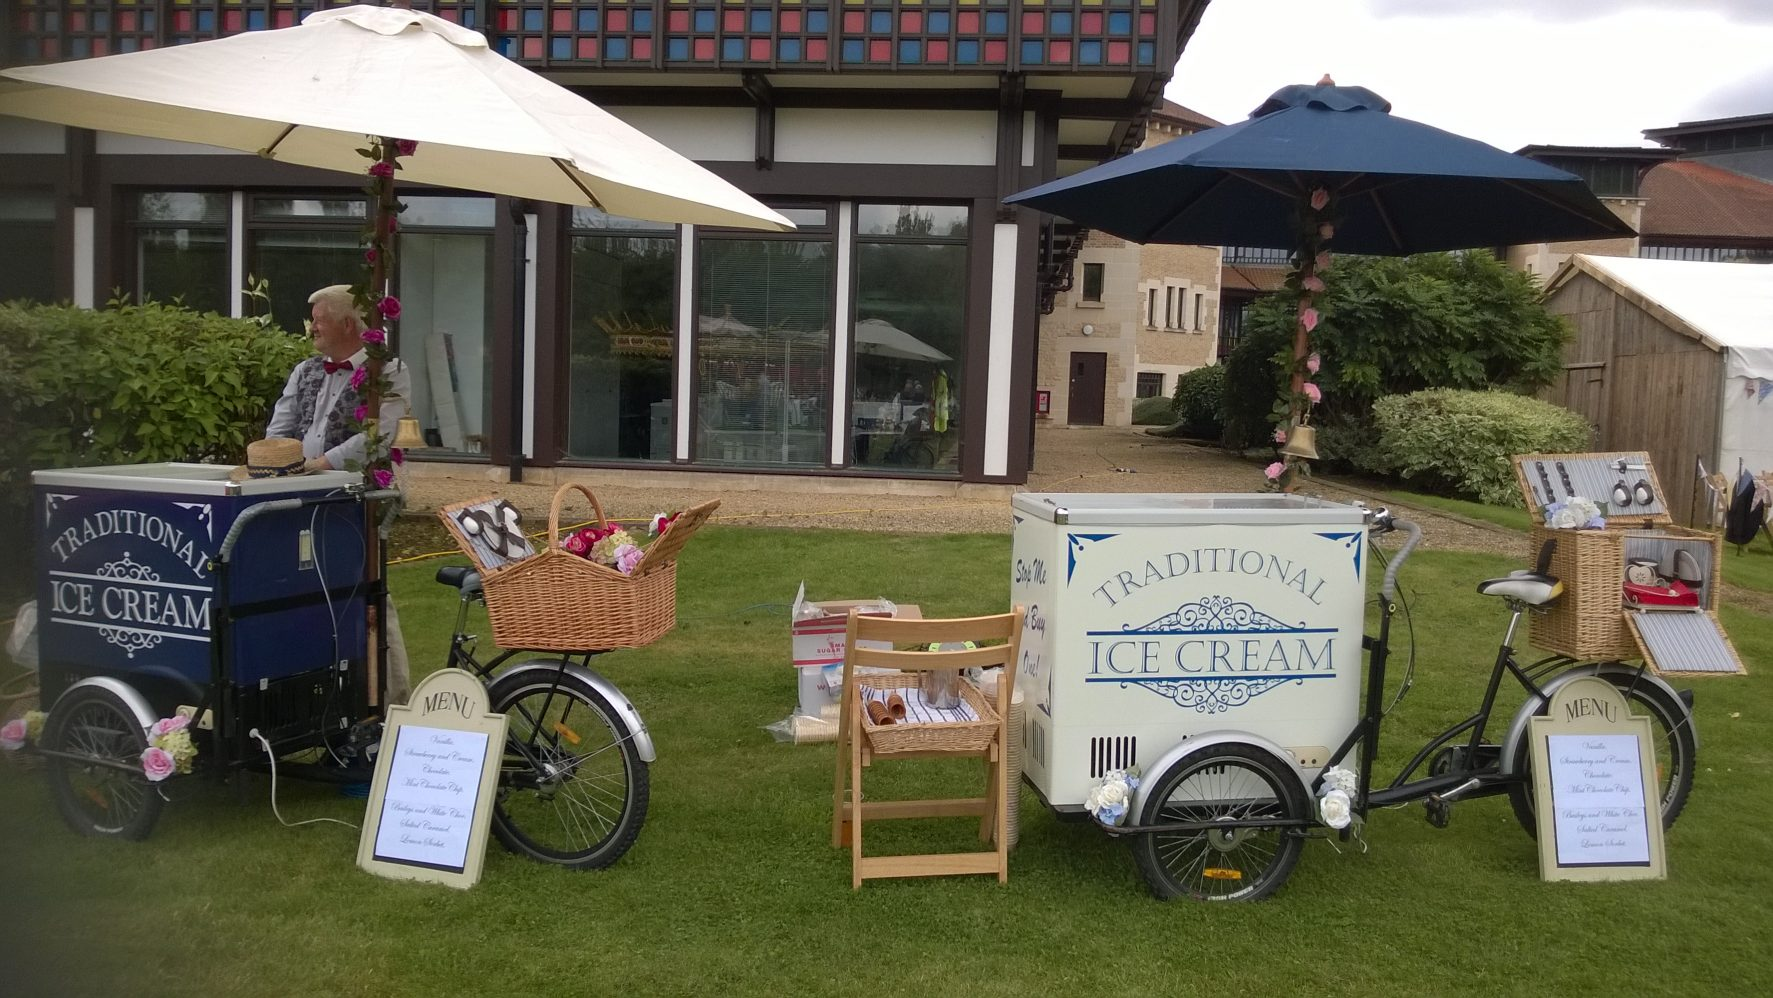 Ice cream carts at a corporate event for 500 guests.